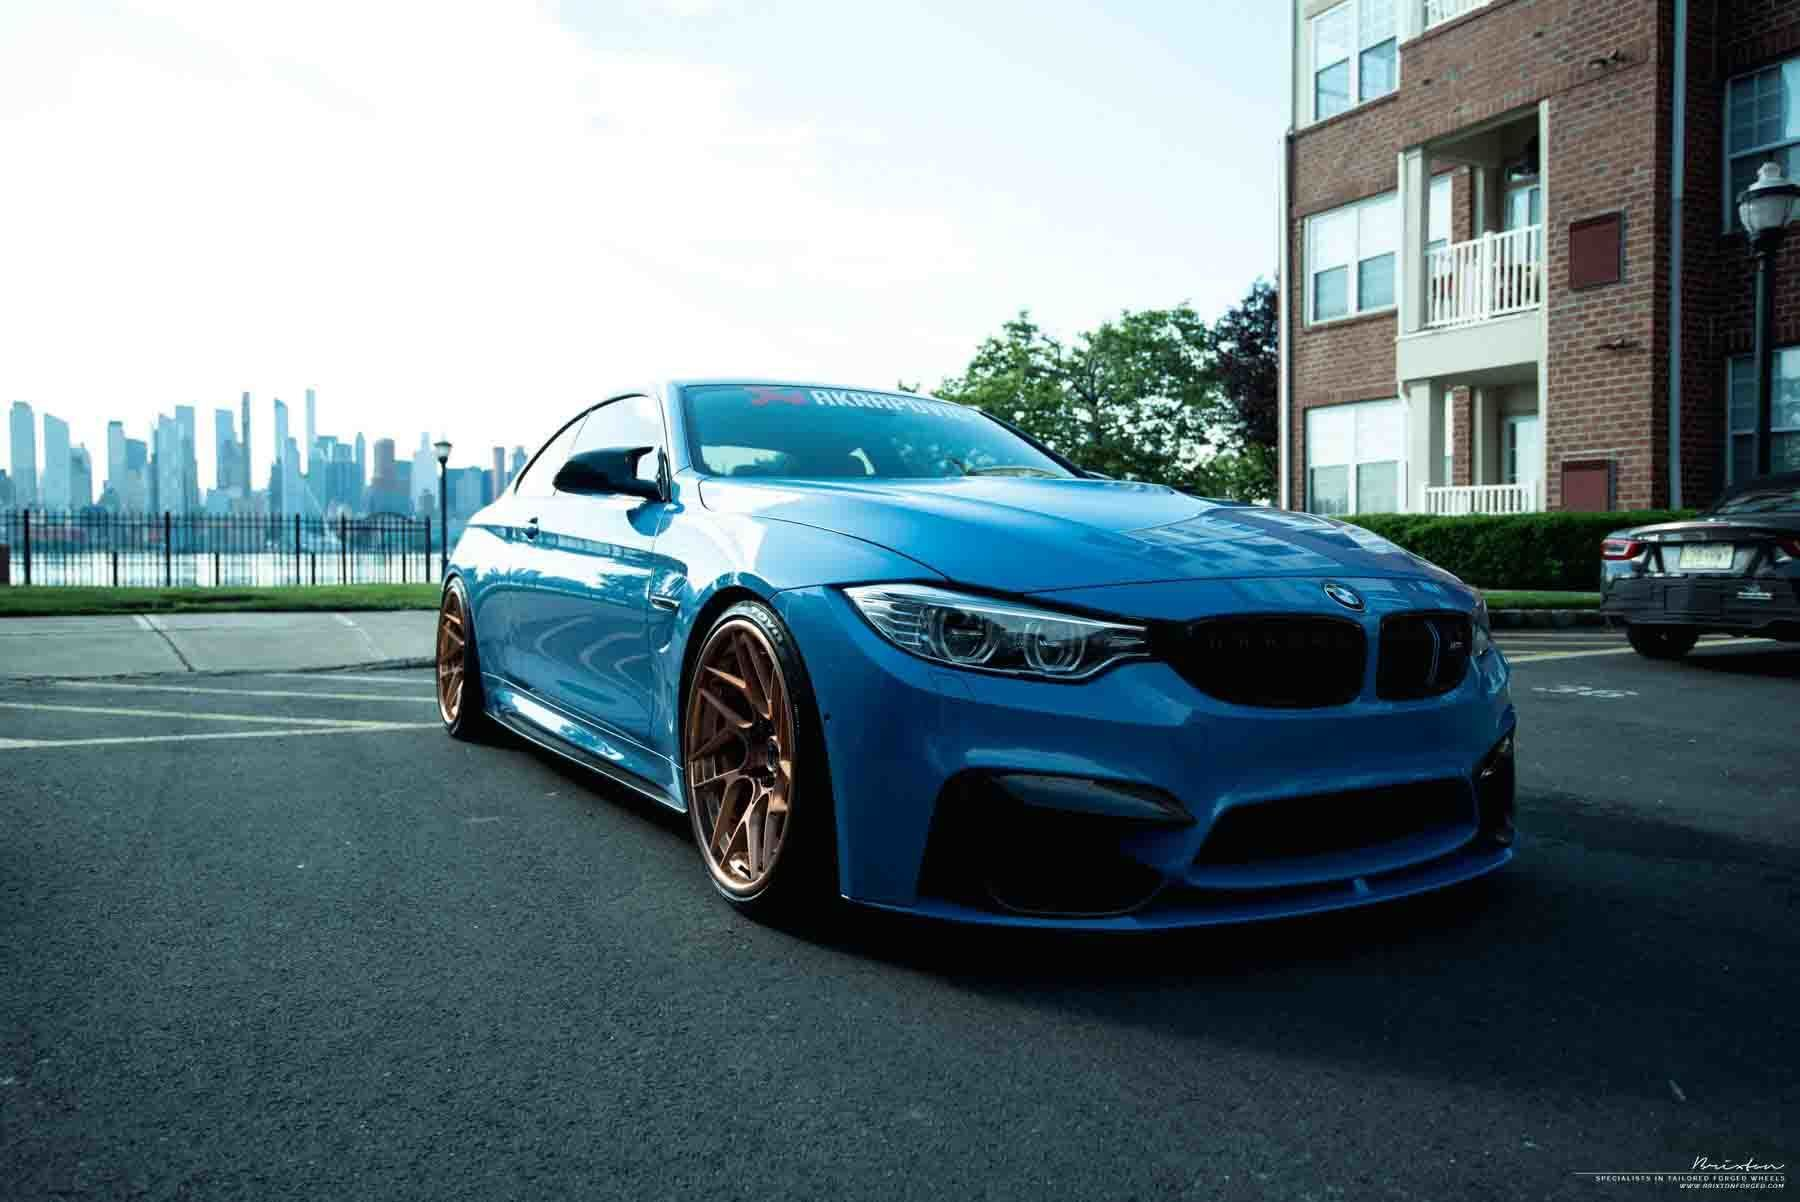 images-products-1-2618-232974906-yas-marina-blue-bmw-m4-f82-brixton-forged-cm7-targa-series-forged-concave-wheels-rose-gold-4-180.jpg